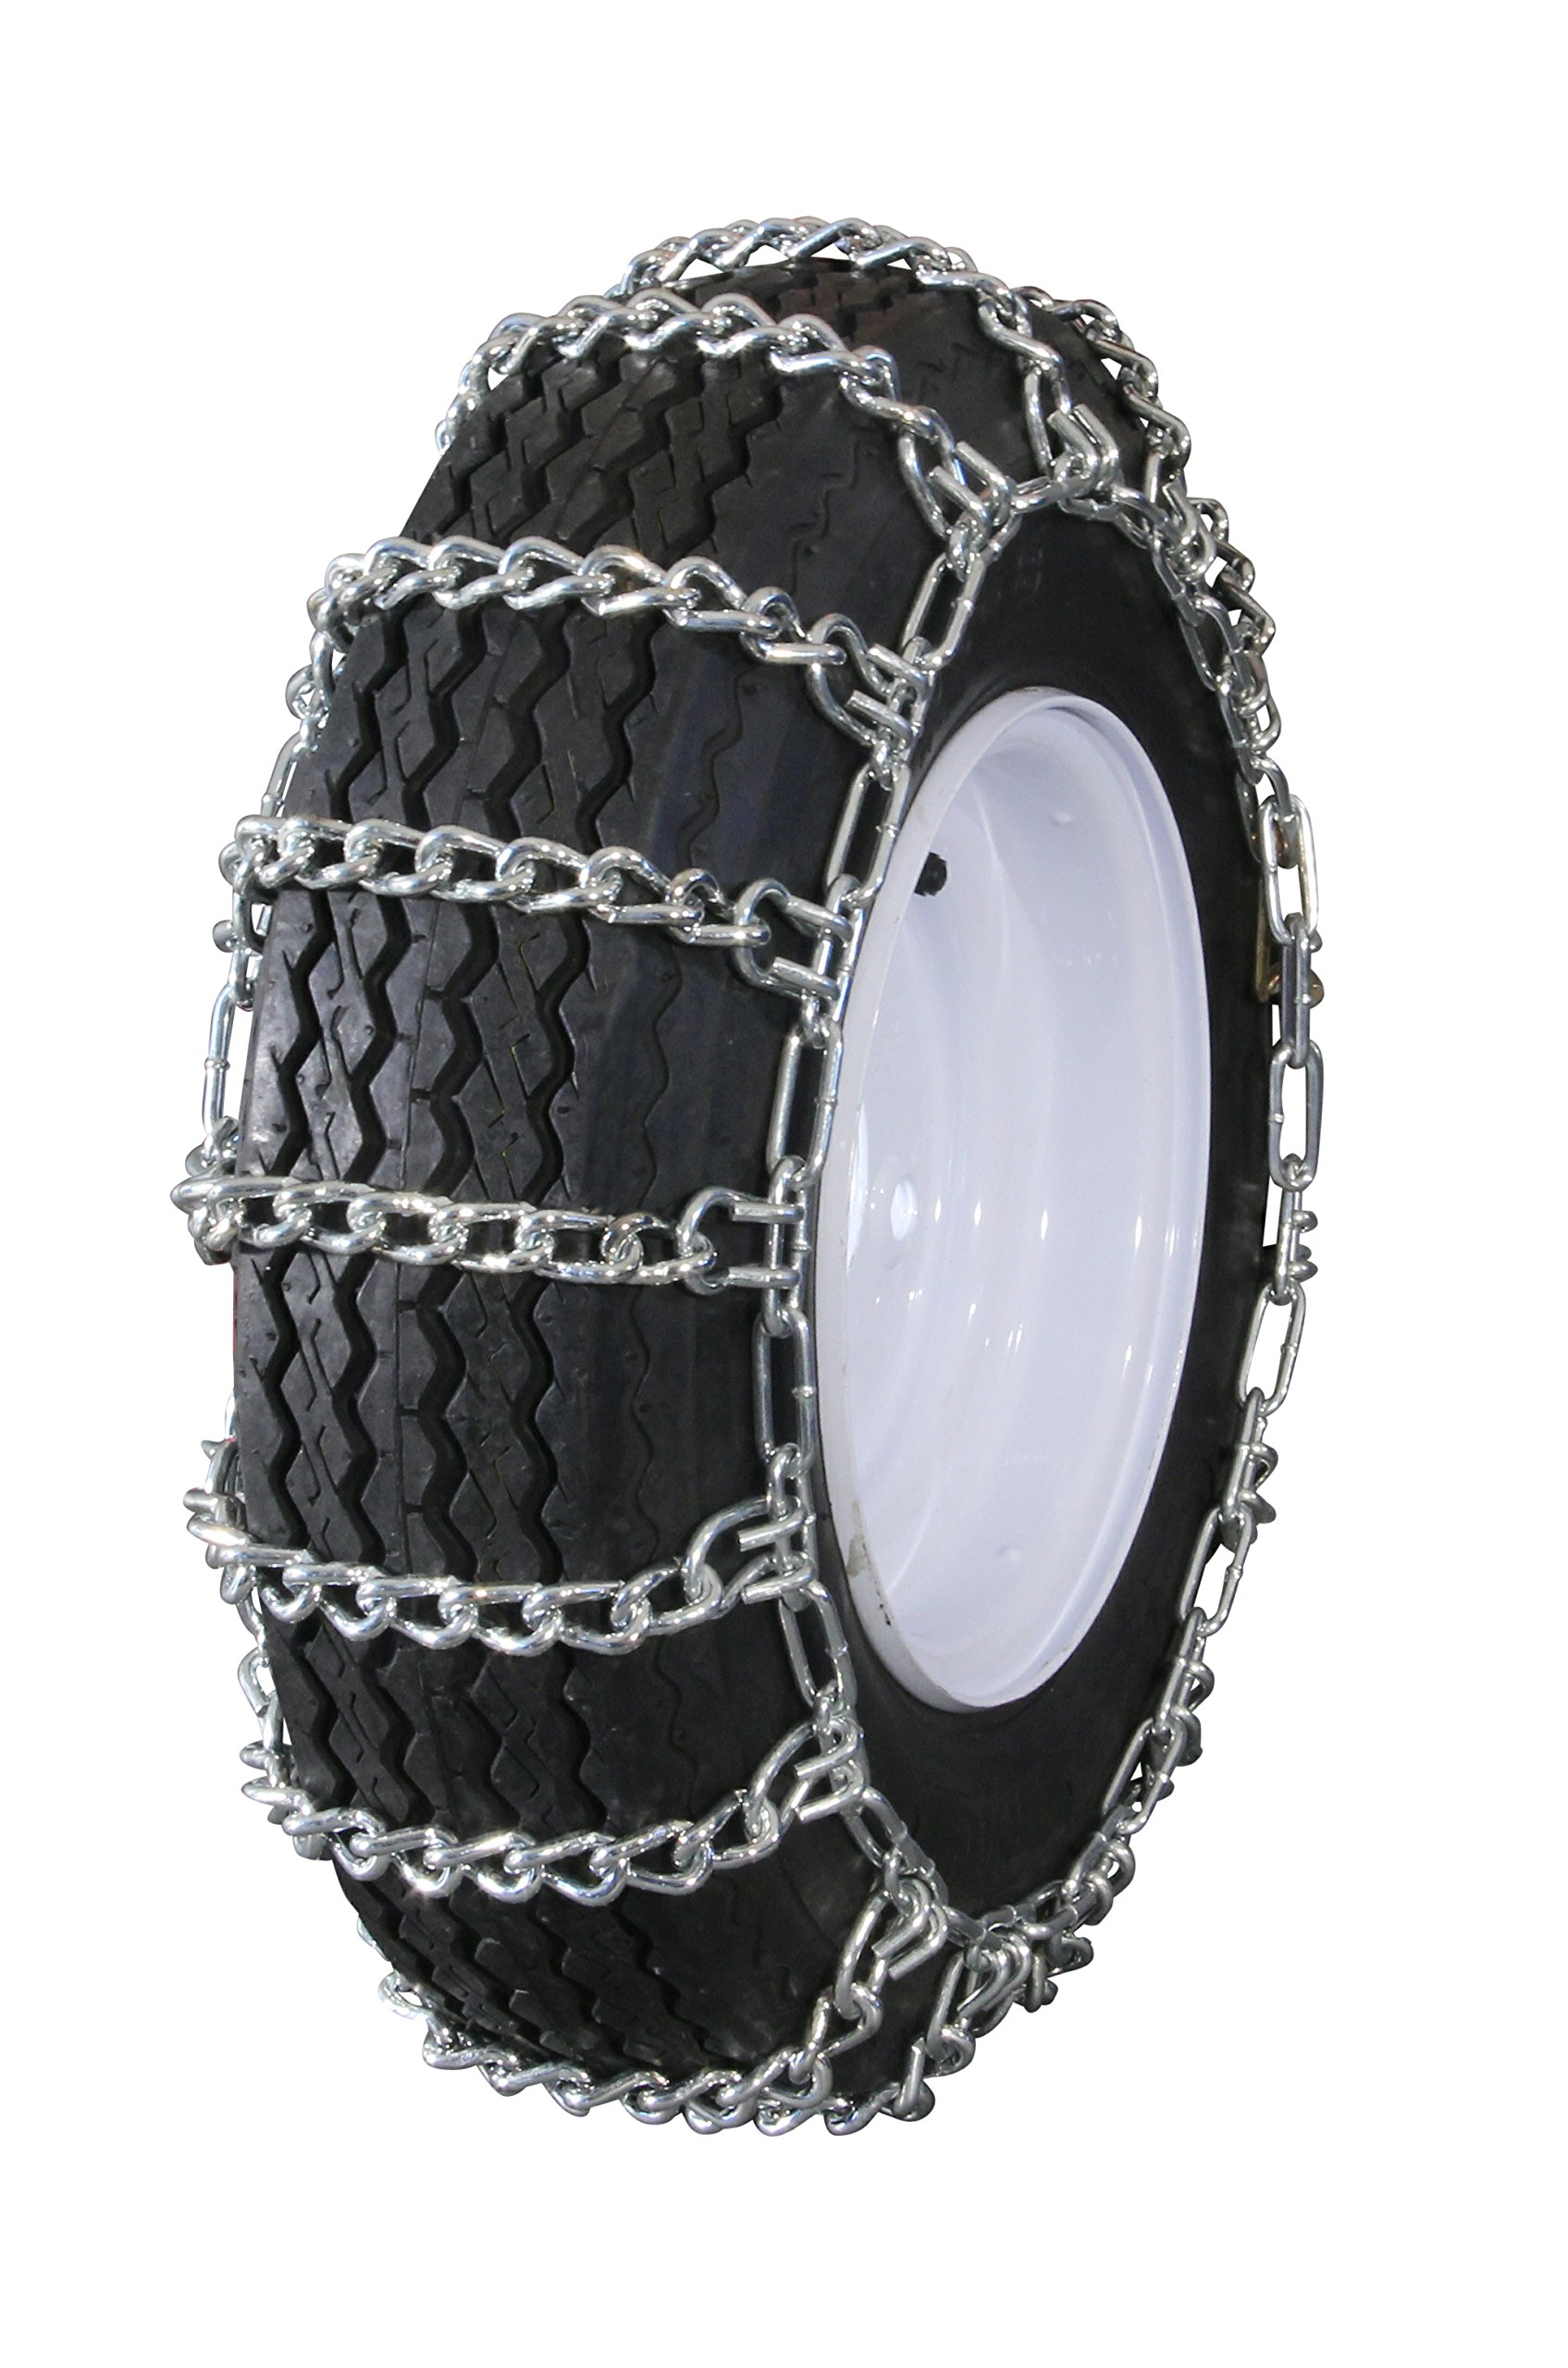 MaxTrac Peerless MTL-423 Garden Tractor 2 link Ladder Style Tire Chains 4.10/3.50x4, 3.40/3.00x5, 4.10x4, 3.50x4, 3.40x5, 3.00x5